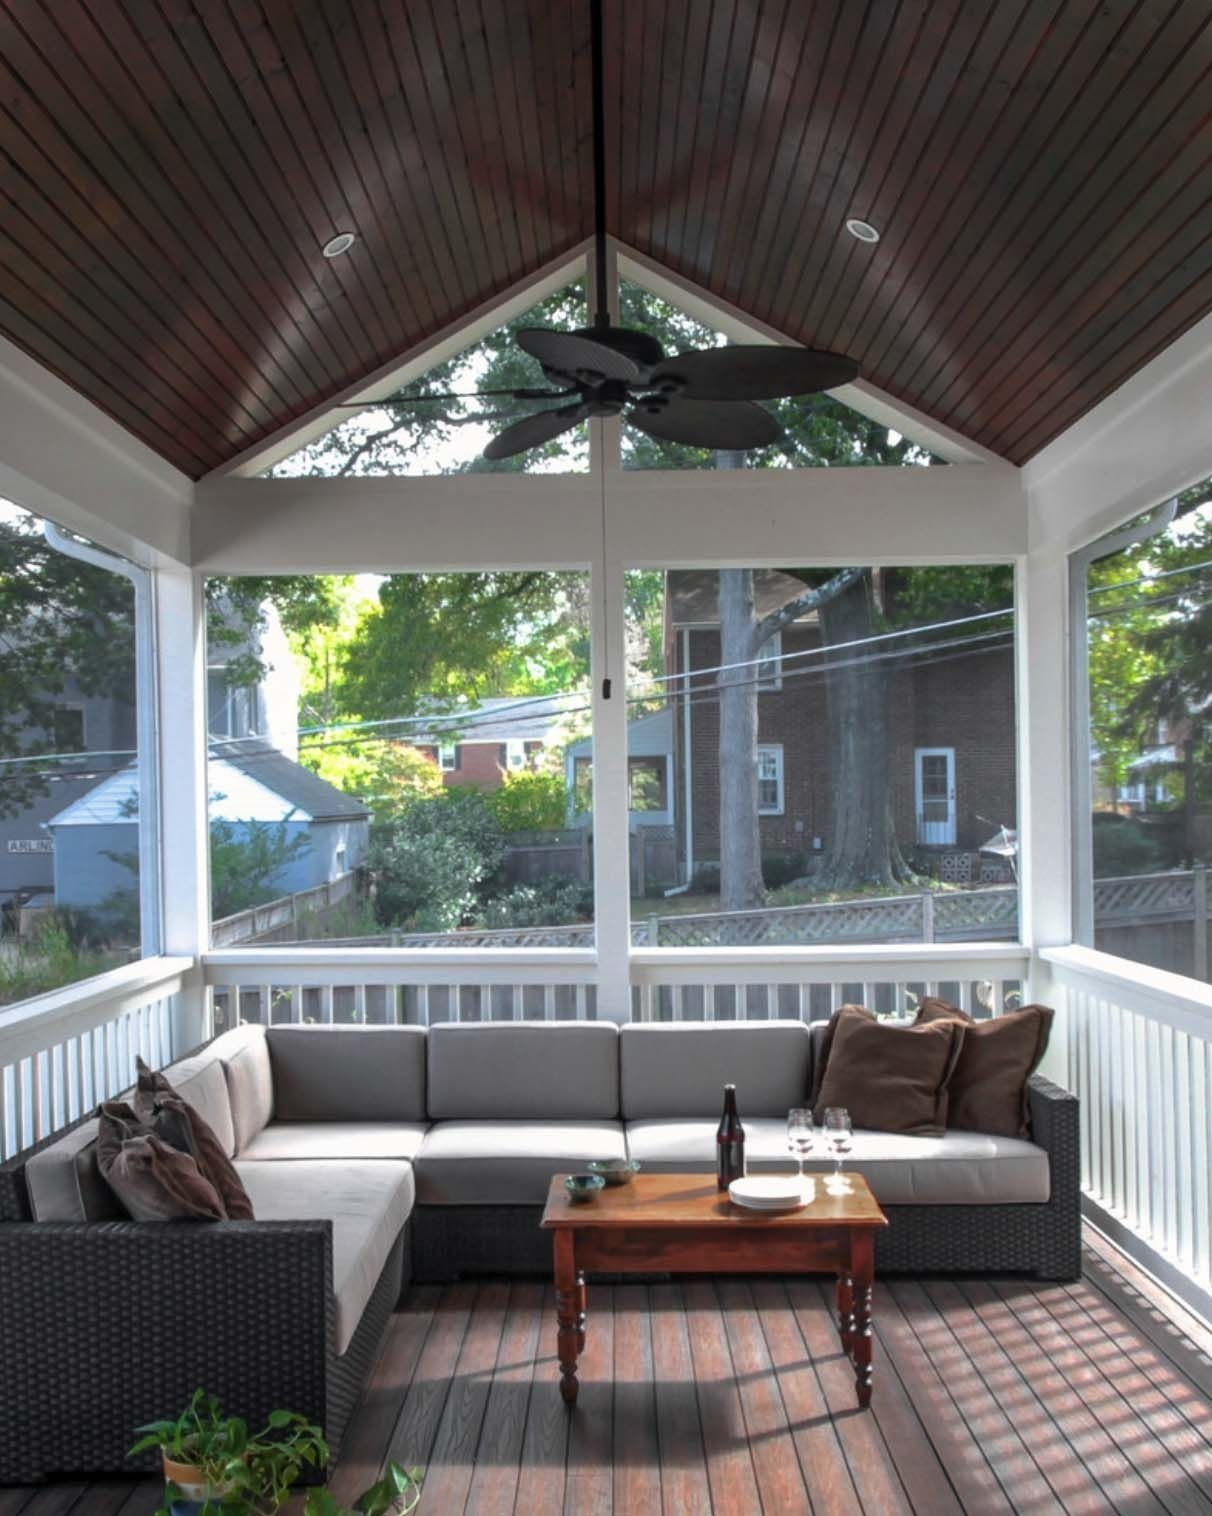 10 Trendy Ideas For Screened In Porches 38 amazingly cozy and relaxing screened porch design ideas porch 2020